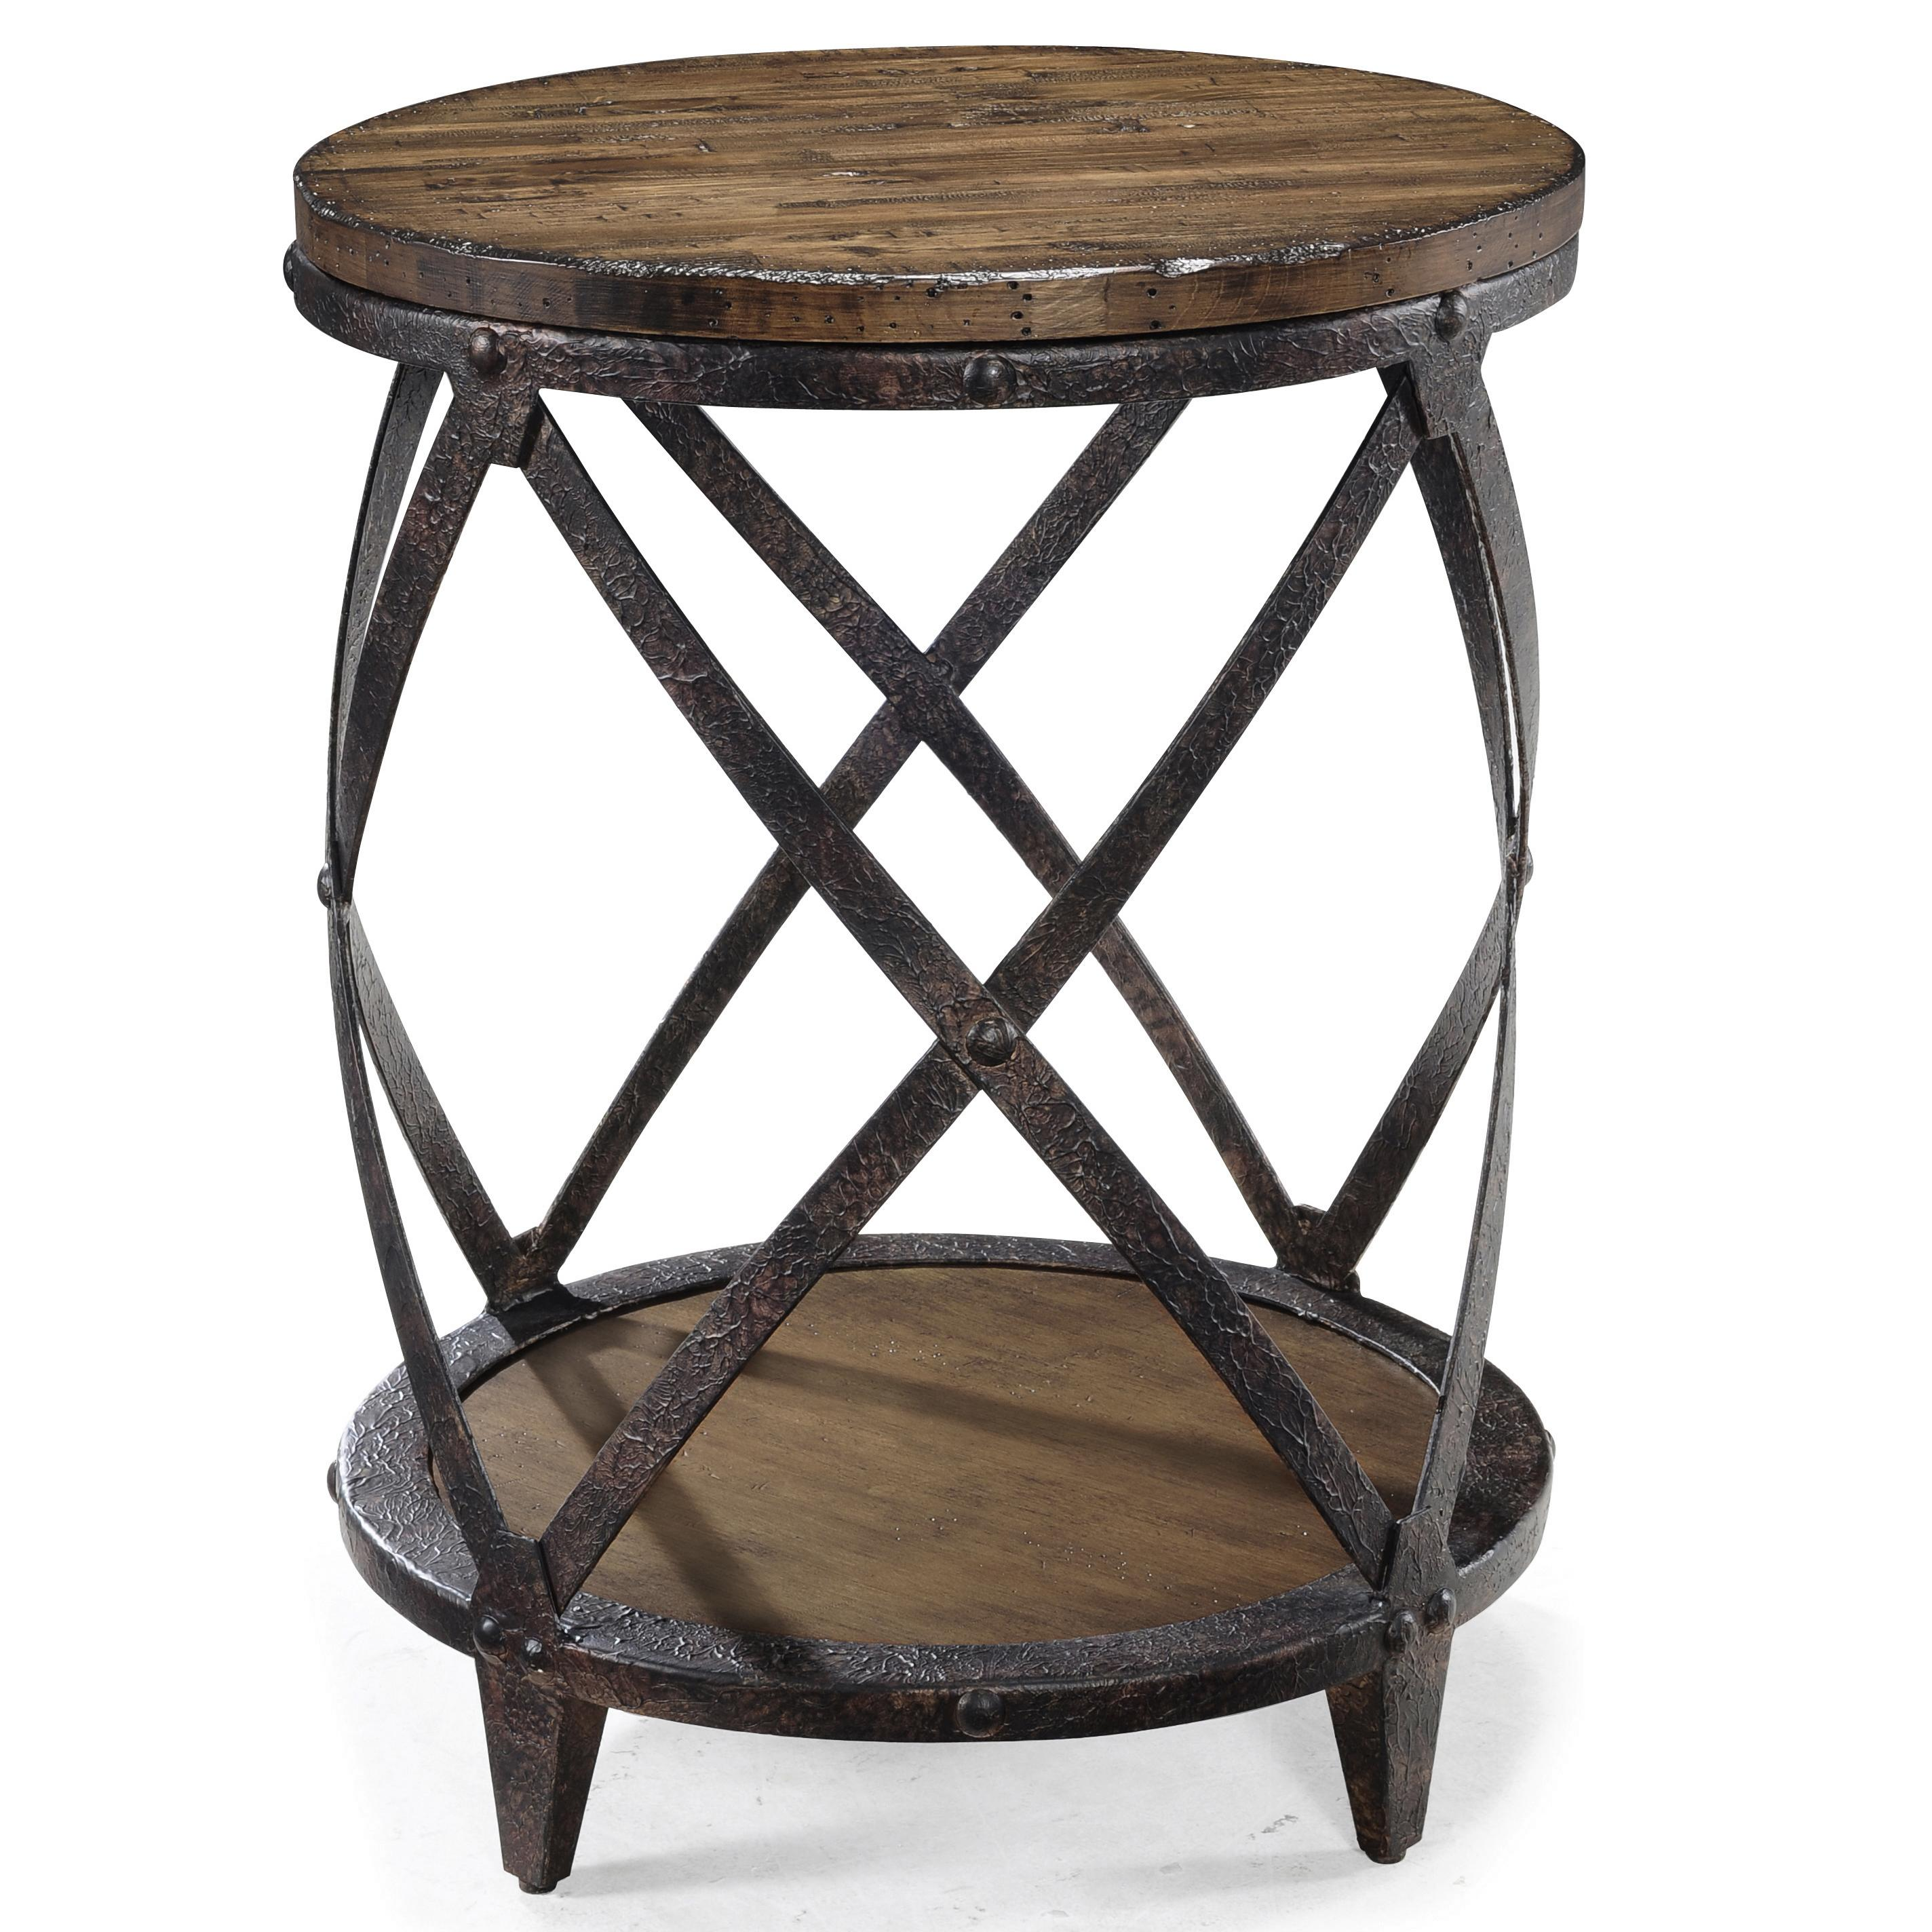 enchanting round accent table decorating ideas css plugin tablet wordpress contents word latex mac tableau likable html boo nederlands tablespoo dream training vertaling kopen